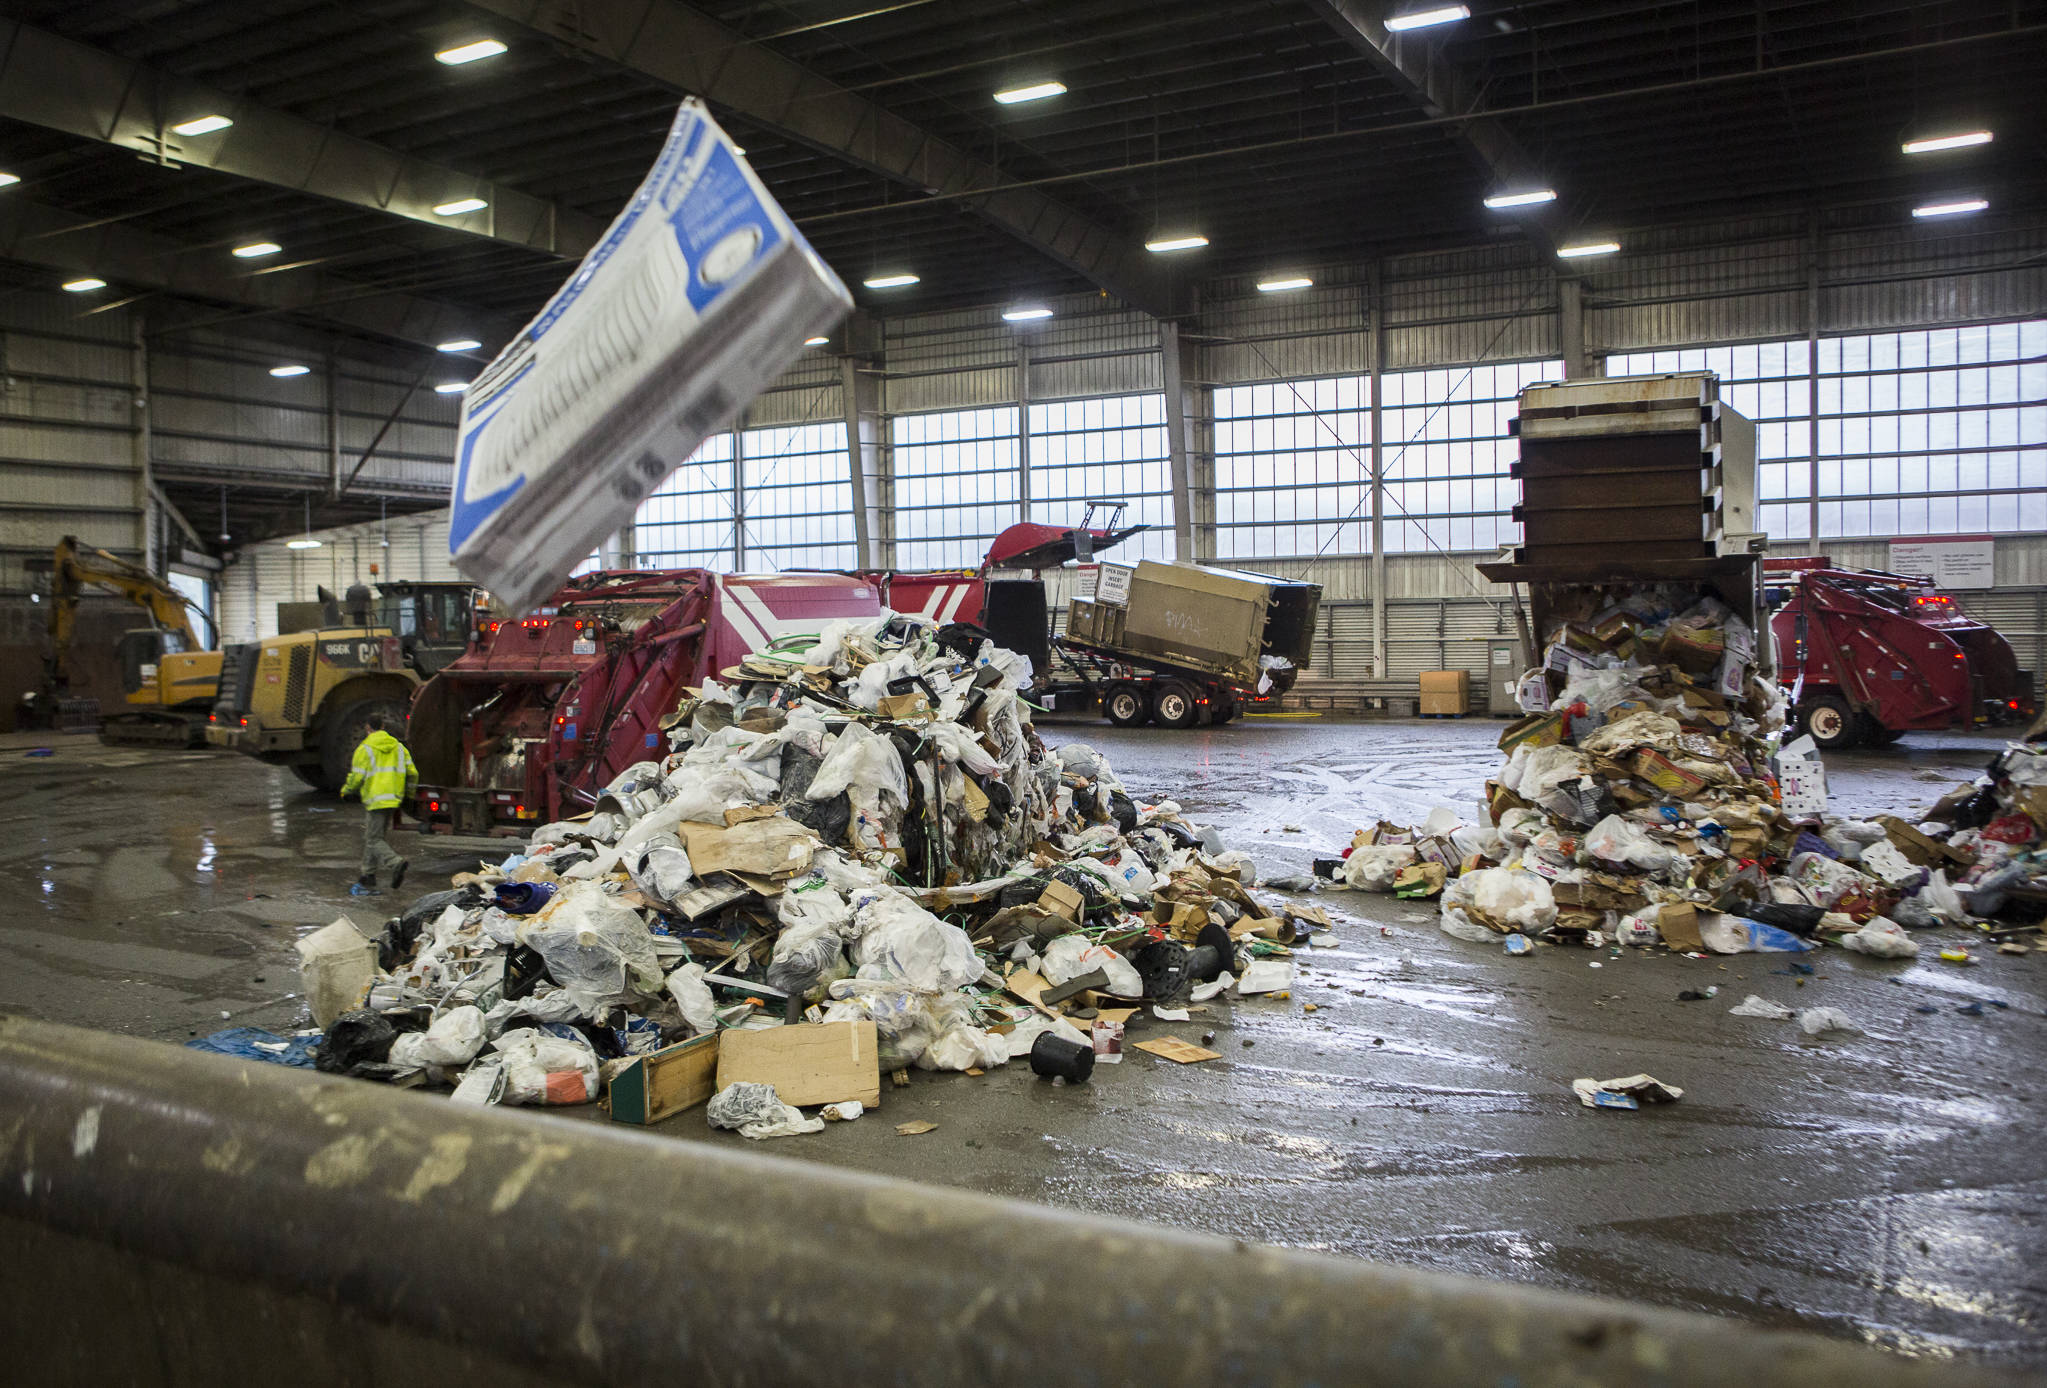 Garbage trucks dump trash onto the tipping floor at the Airport Road Recycling & Transfer Station on Nov. 24 in Everett. Photo by Olivia Vanni/The Herald (Everett)